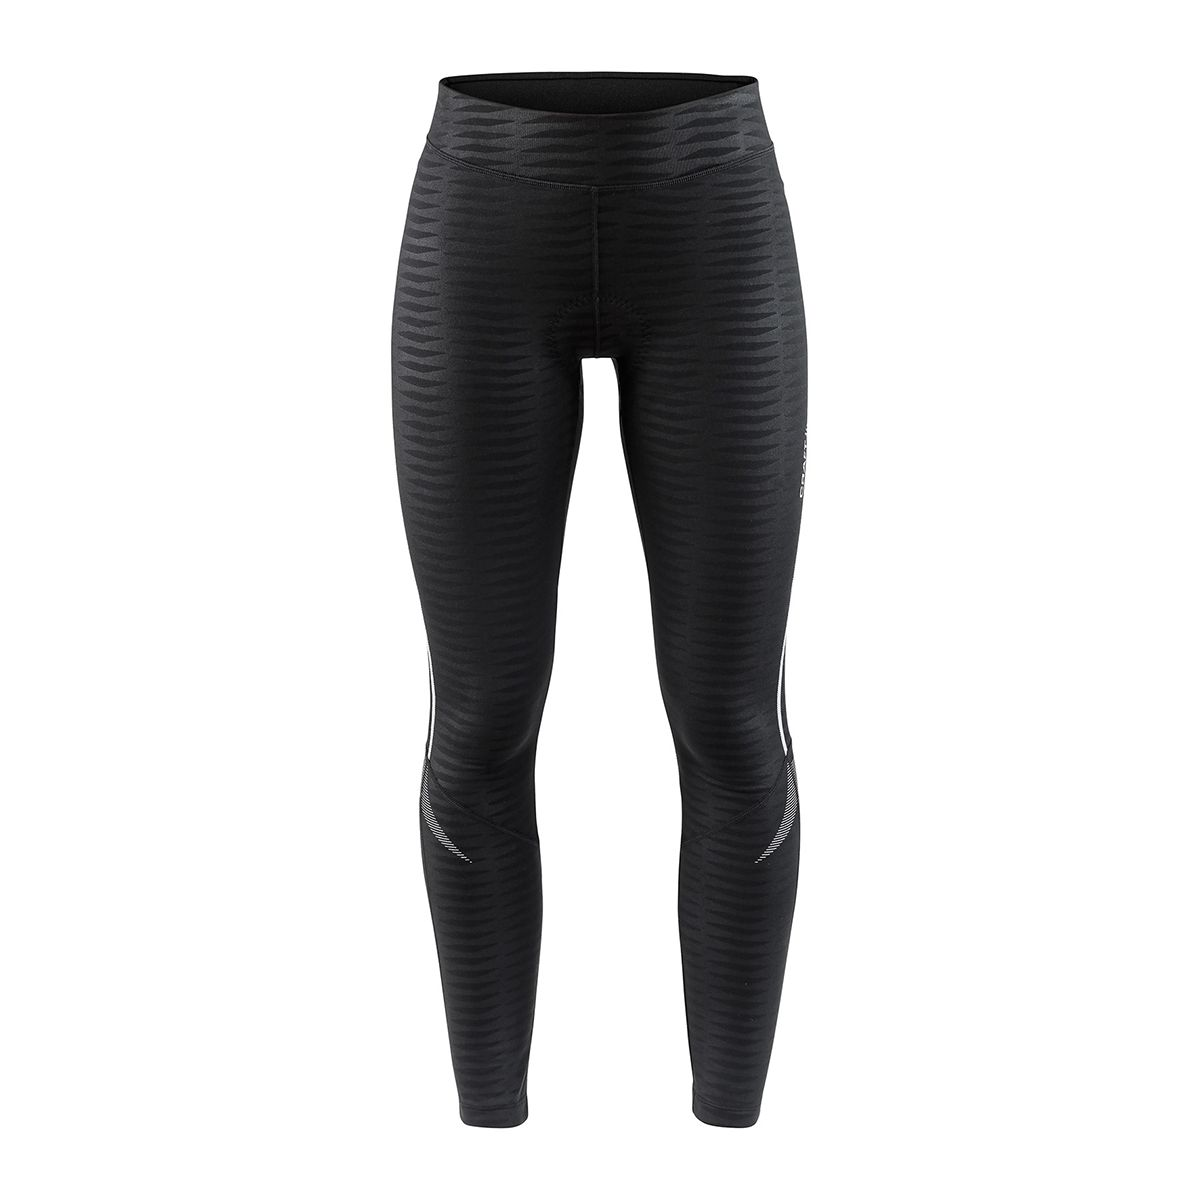 CRAFT IDEAL THERMAL TIGHTS W for women | Trousers